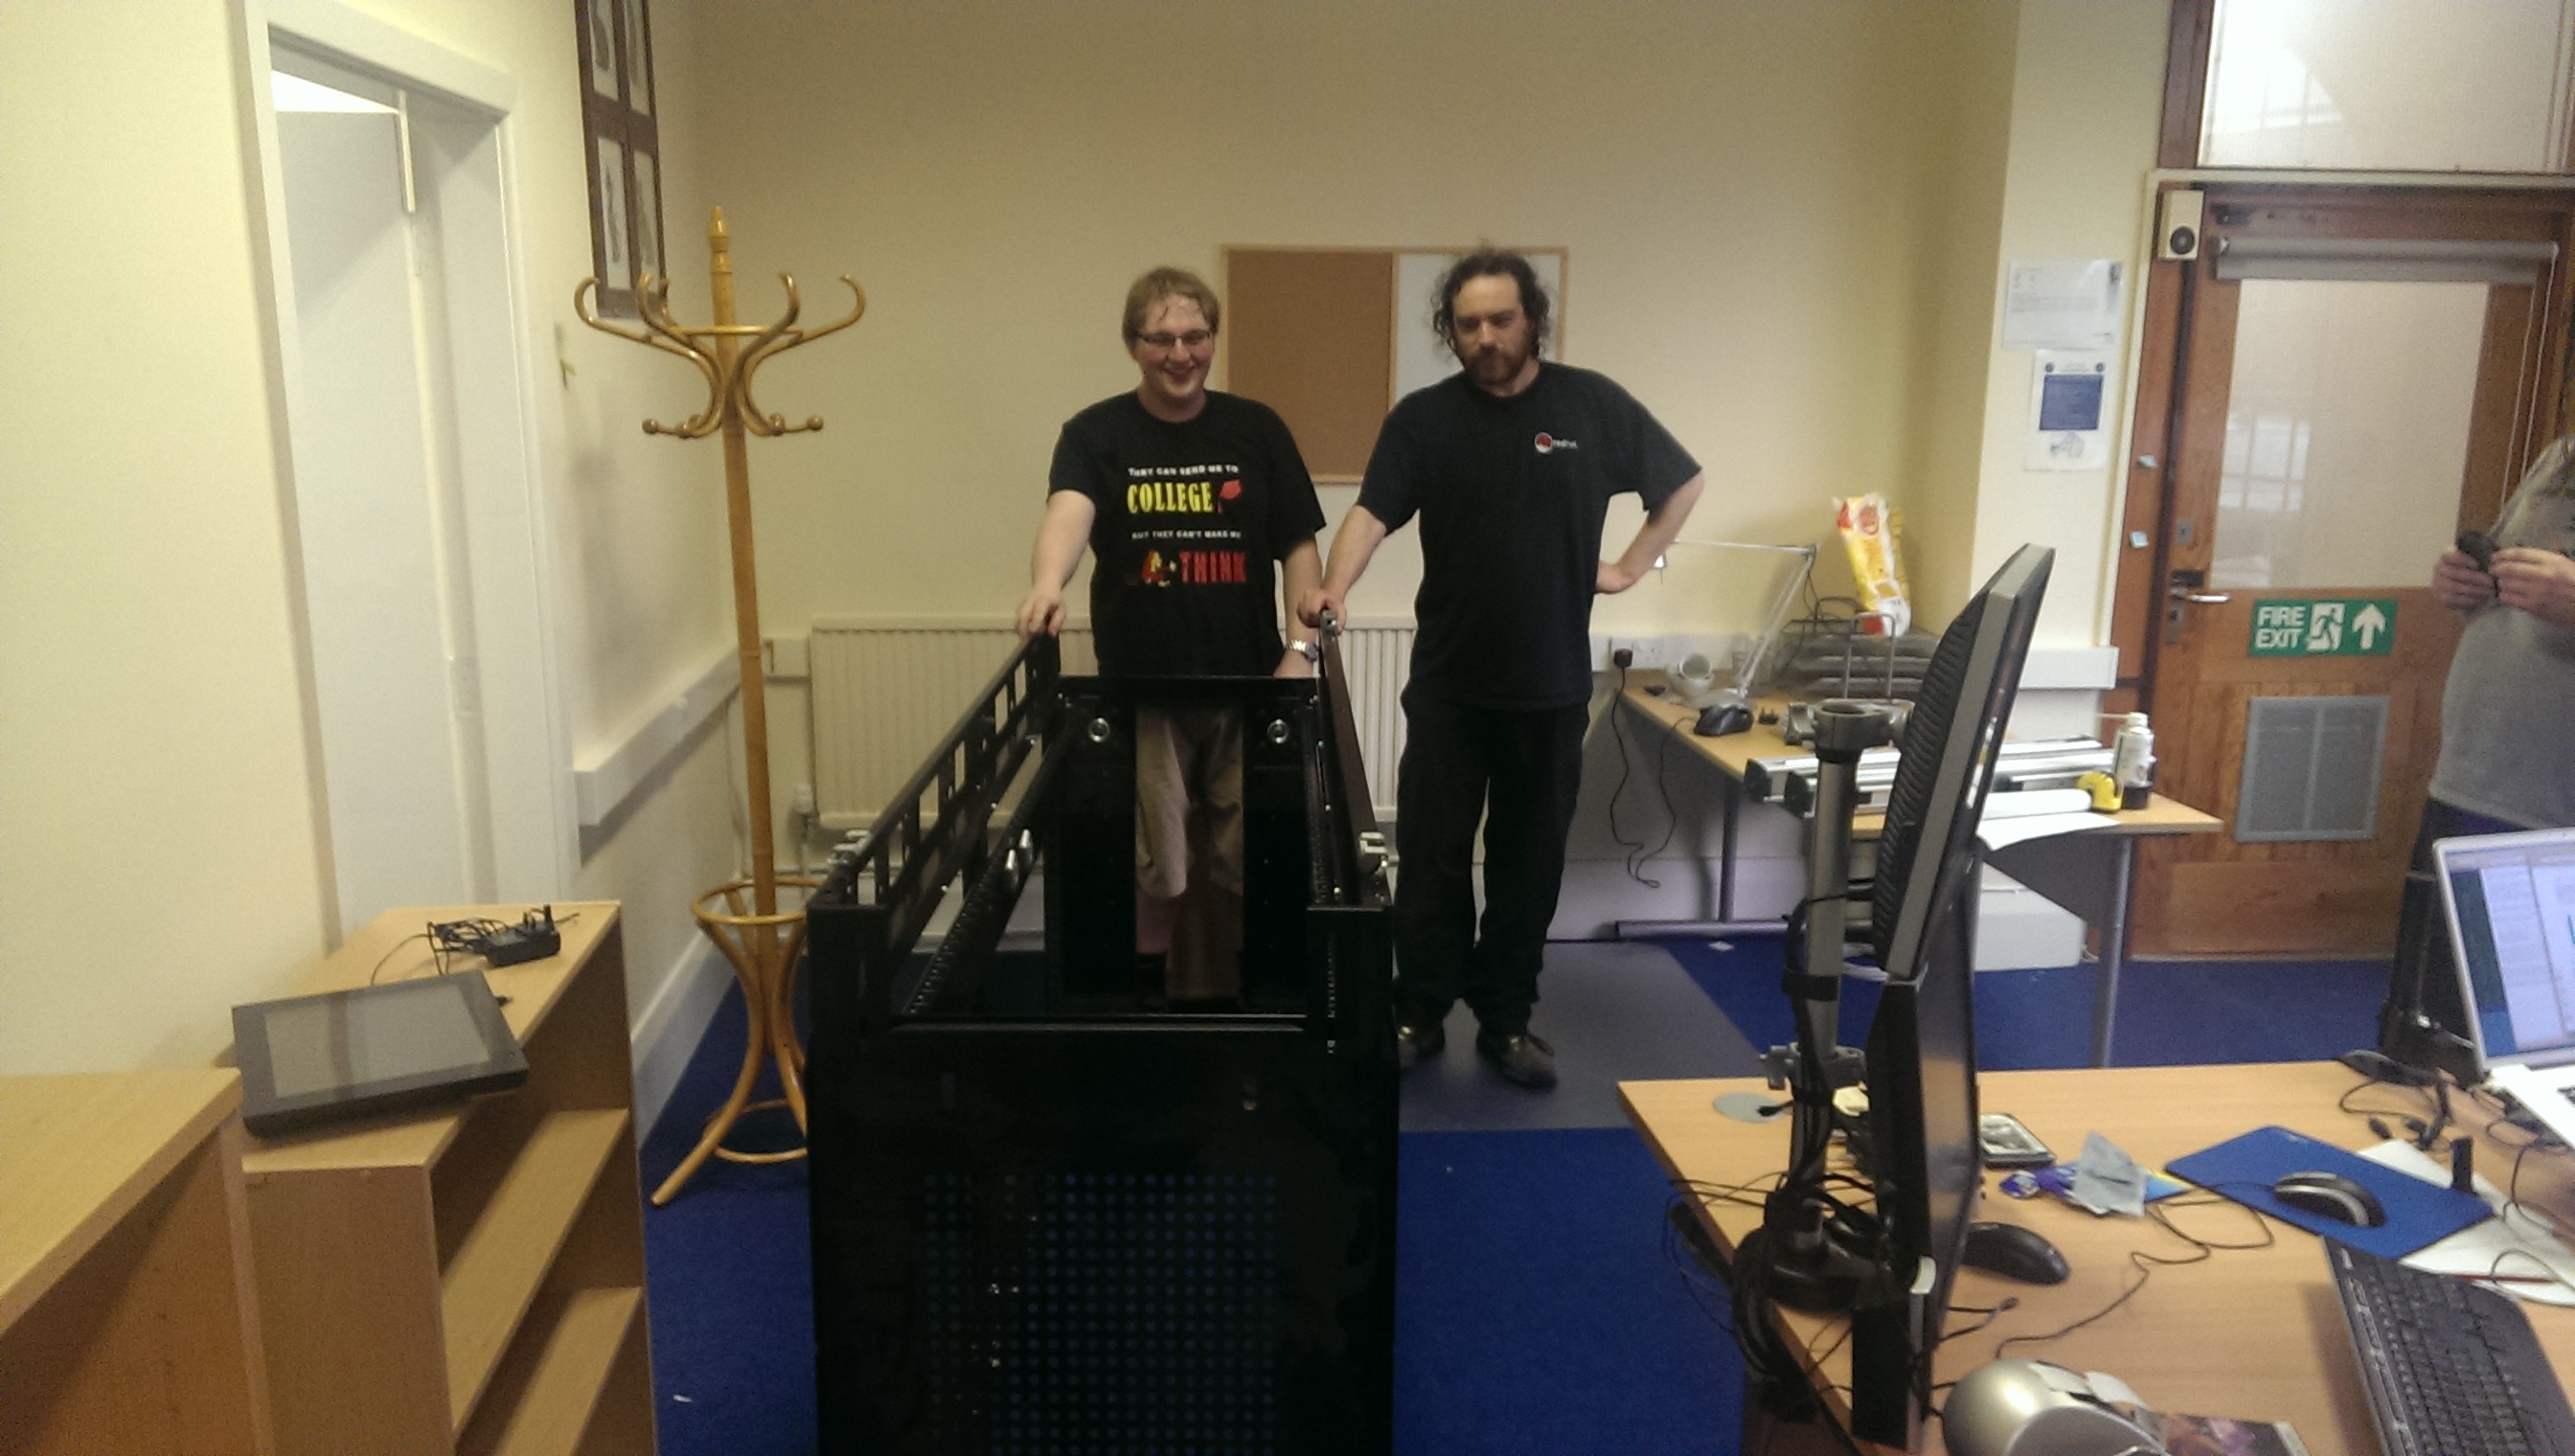 Ian and Tom moving the larger rack (Darth Vader's Coffin)